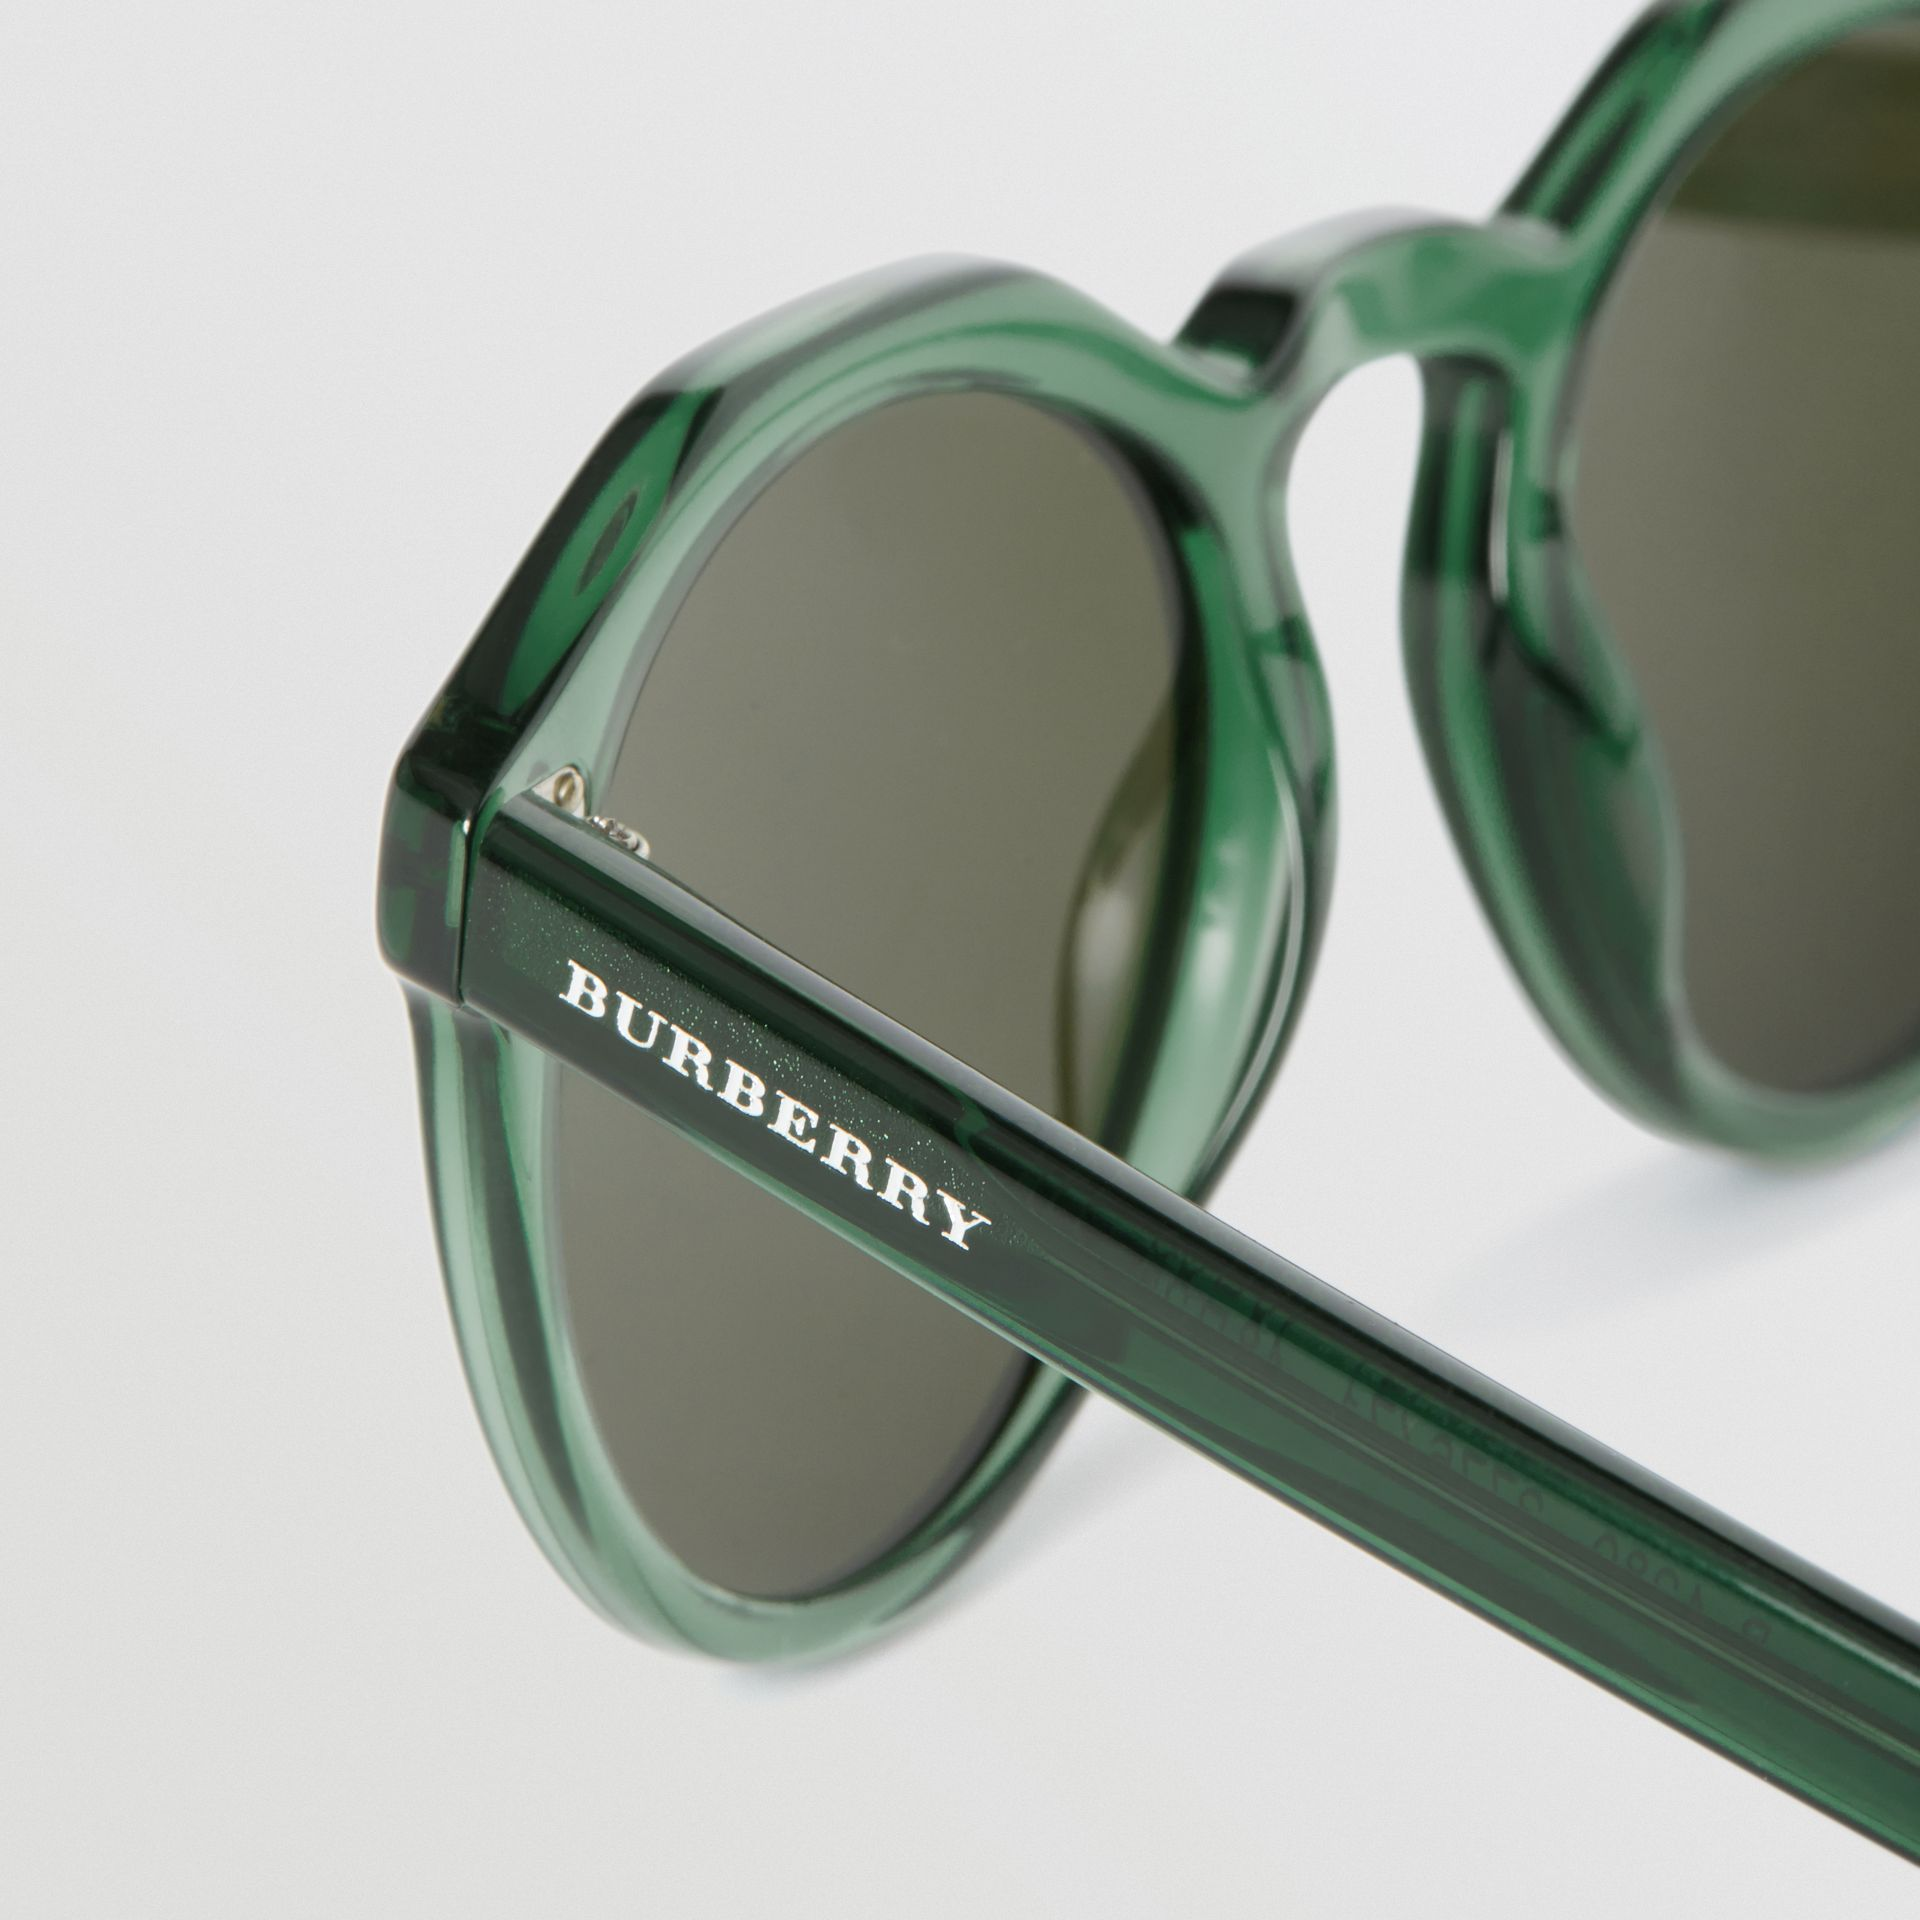 Keyhole Round Frame Sunglasses in Green - Men | Burberry Australia - gallery image 1